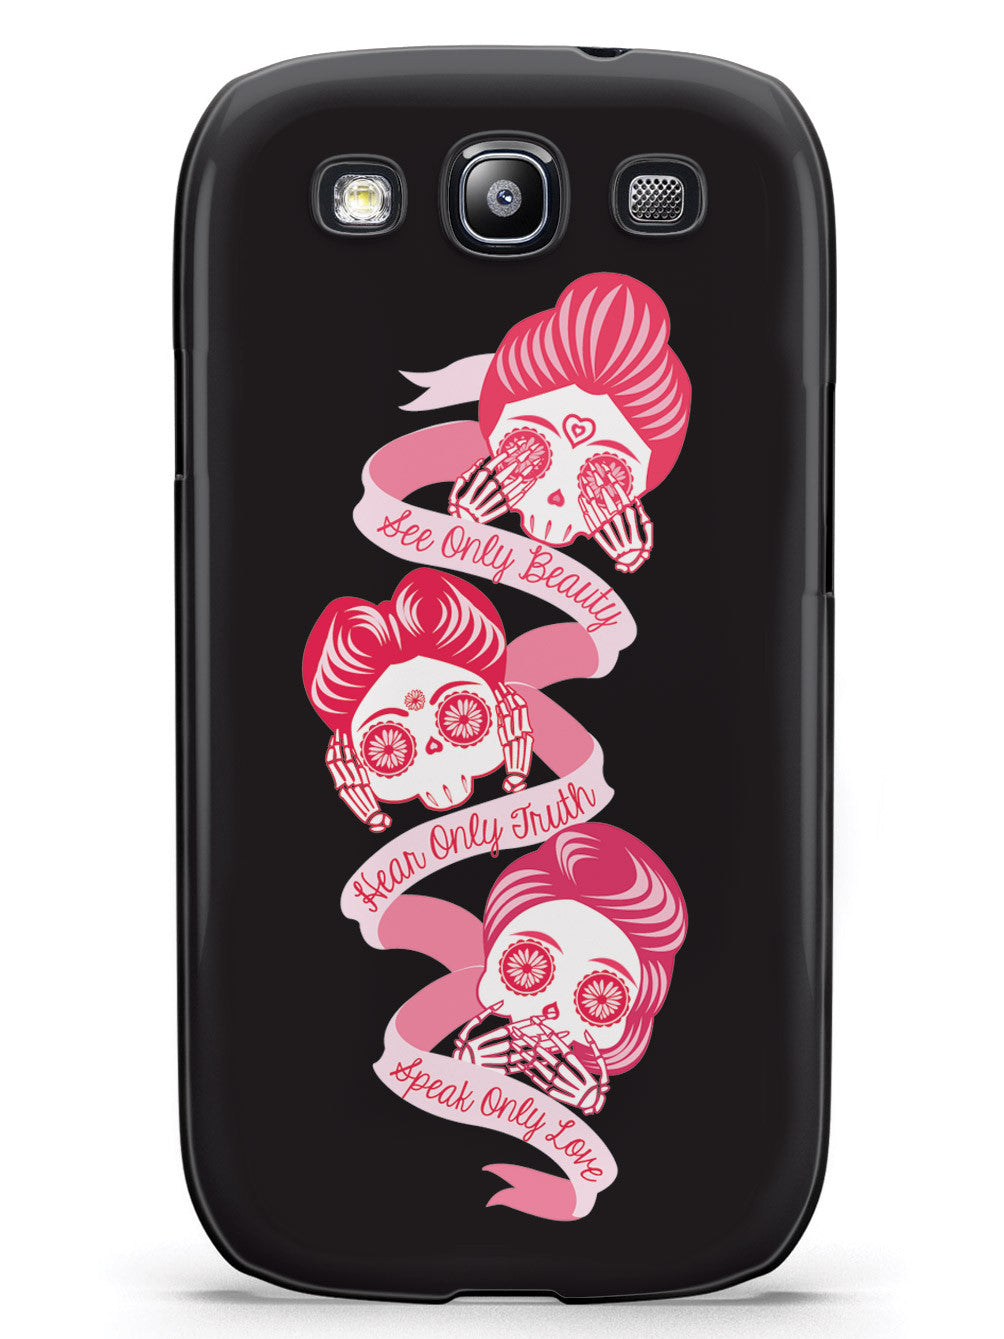 Beauty, Truth, Love - Sugar Skull Case